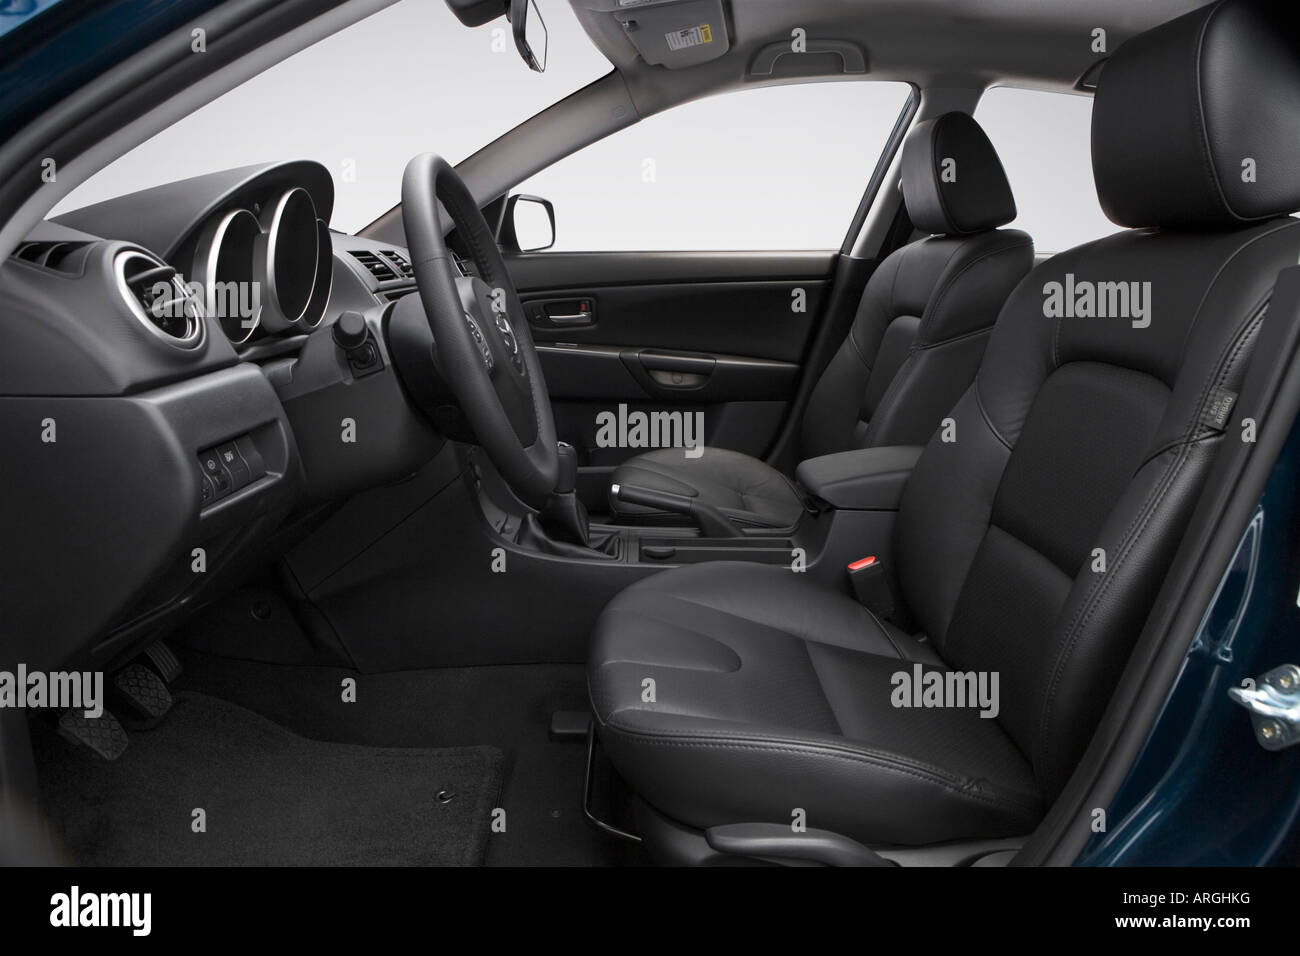 2007 Mazda Mazda3 S Grand Touring In Blue Front Seats